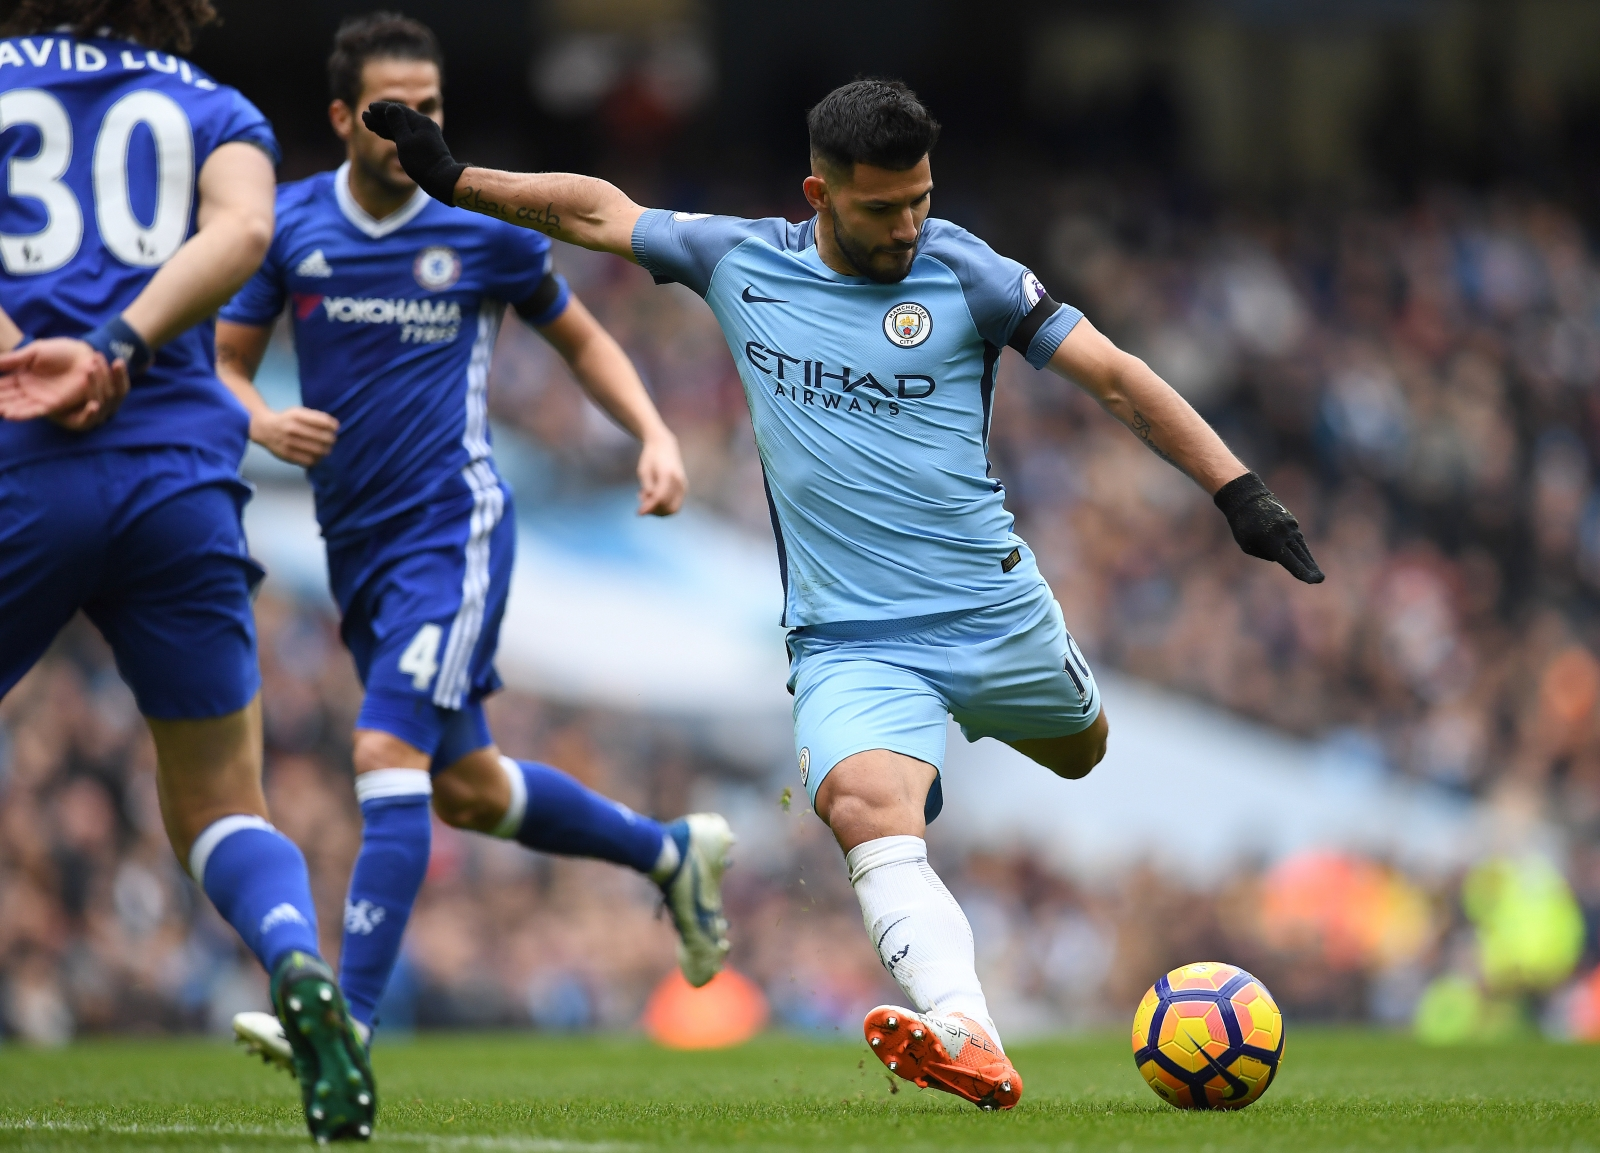 Snap 4 Sport >> What now for Sergio Aguero? Real Madrid, Atletico and other options if Manchester City star leaves